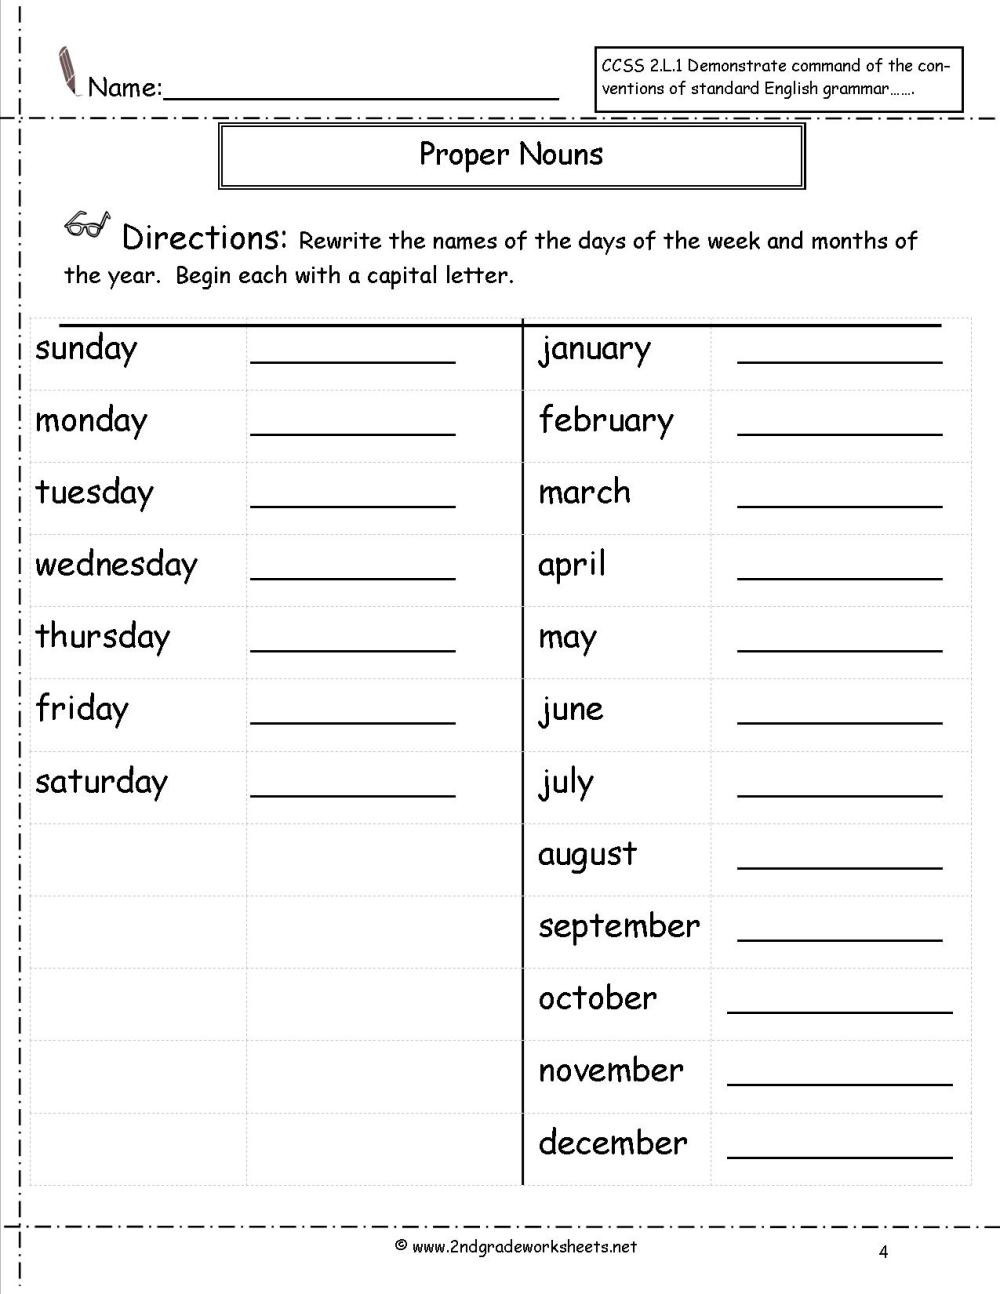 medium resolution of Proper Nouns And Common Nouns Worksheet   Printable Worksheets and  Activities for Teachers